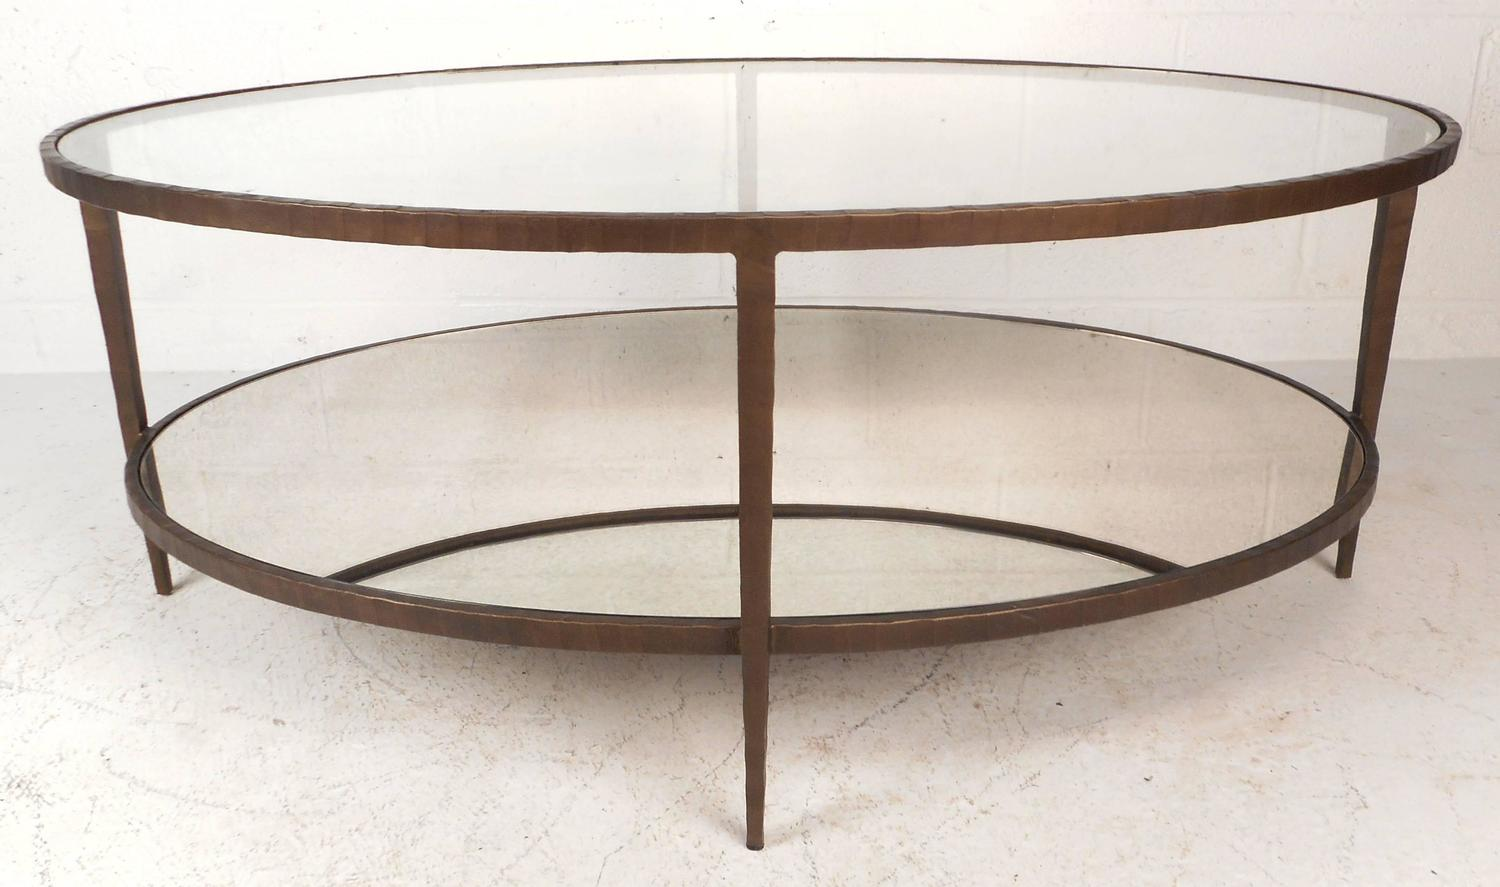 Mid Century Modern Oval Two Tier Textured Metal Coffee Table For Sale At 1stdibs